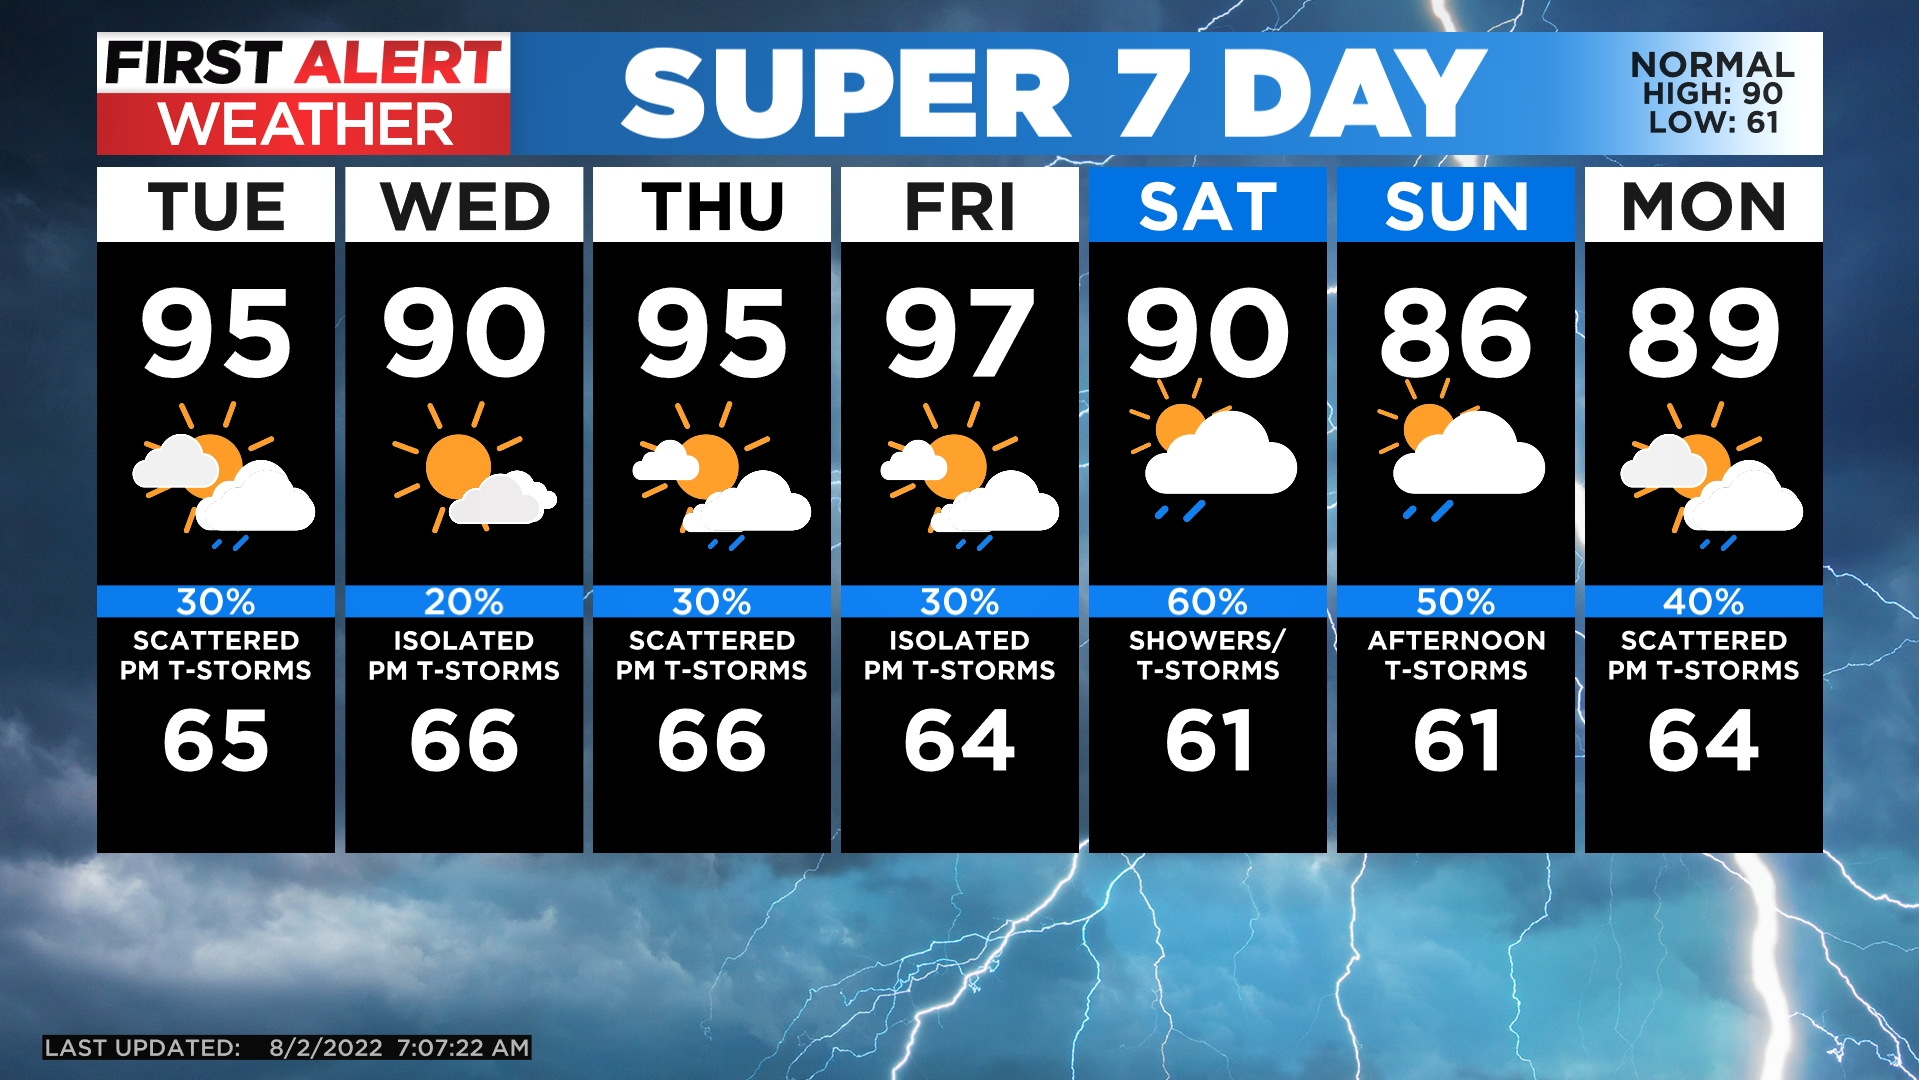 5day A Cold Front Will Drop High Temperatures; Winds Decrease